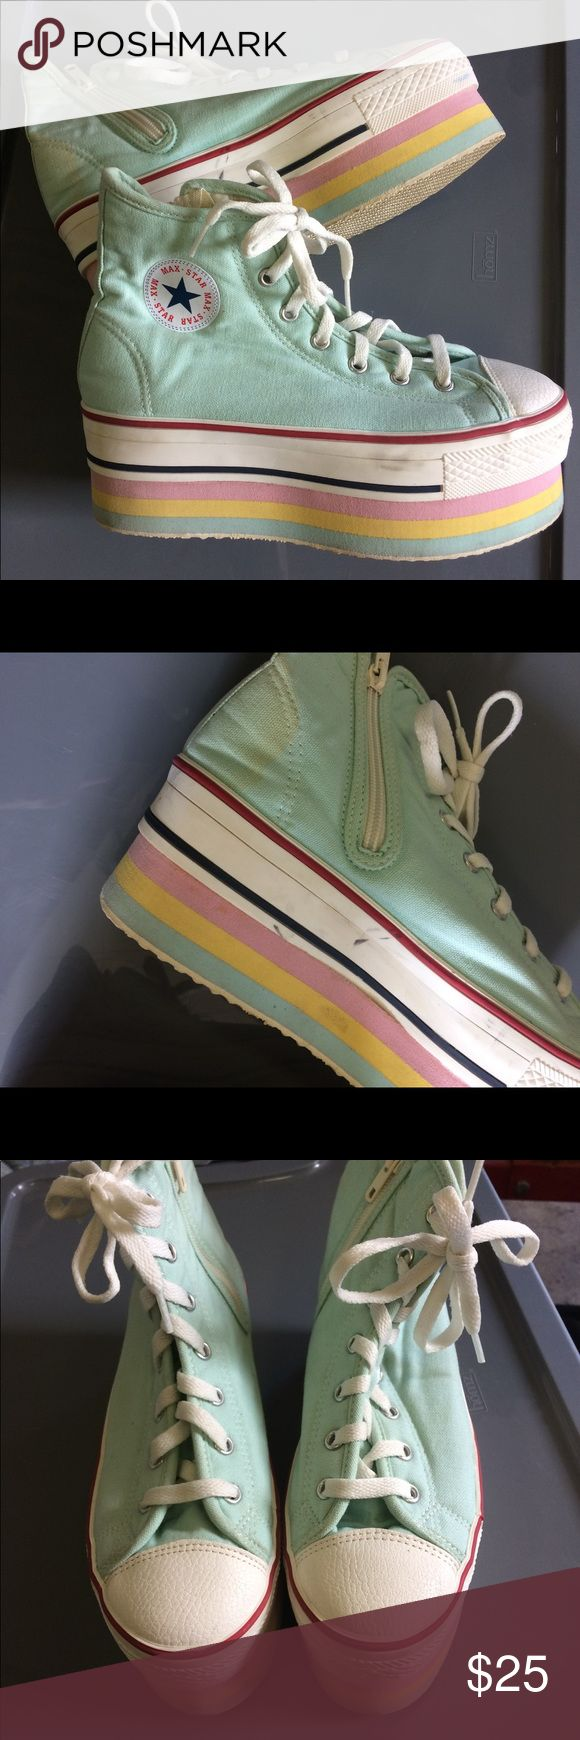 Platform converse sneakers Platform converse lookalikes:) Mint ice cream color and pastel striped platforms:) slight scuffing and stains but it can probably come out I just don't know how to clean these shoes. Fits 8-8.5 Shoes Sneakers